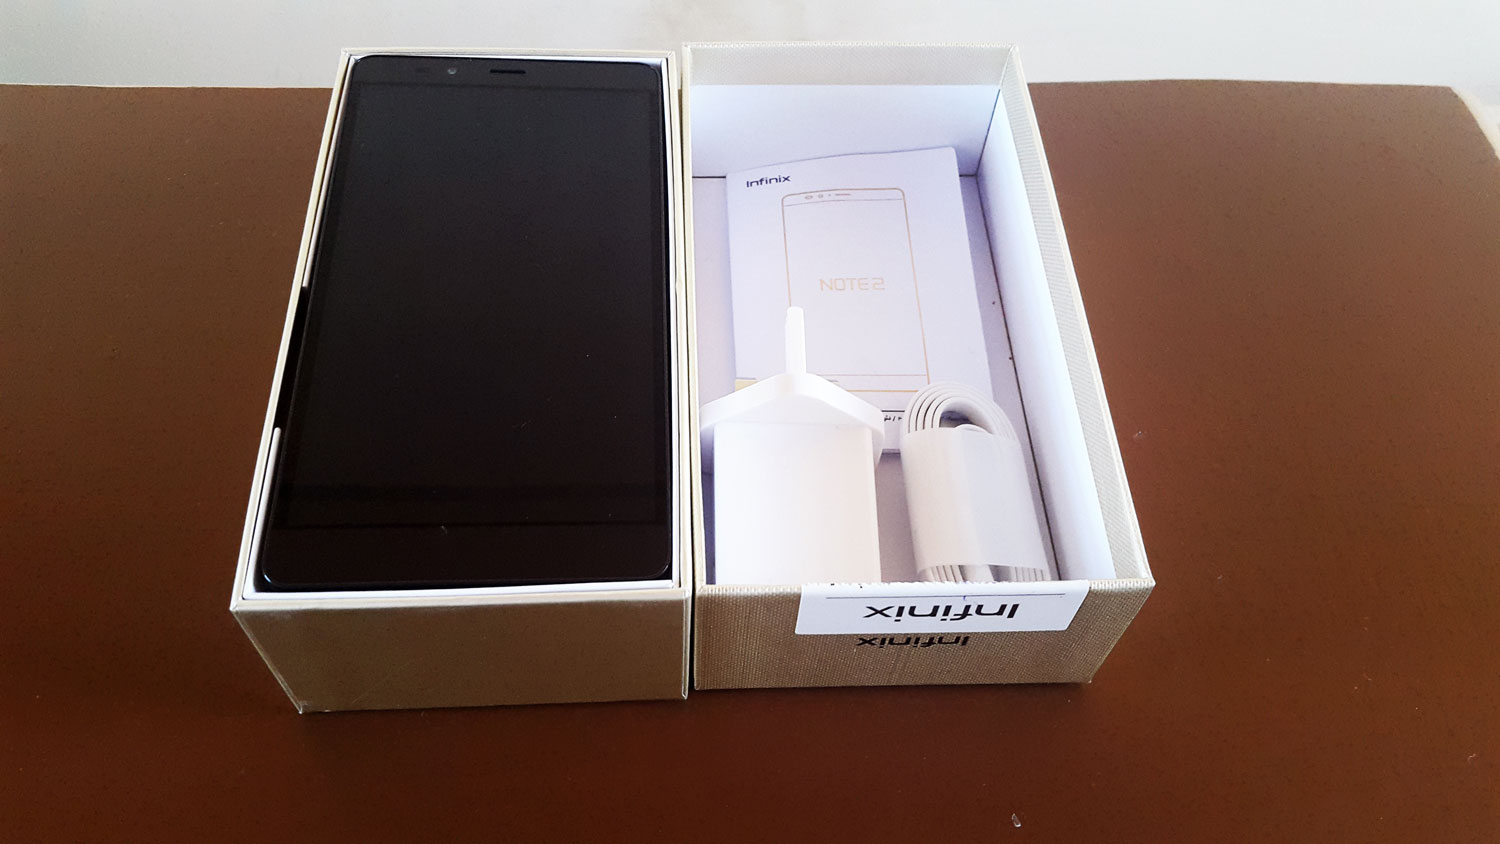 [image] Infinix Note 2-unboxing